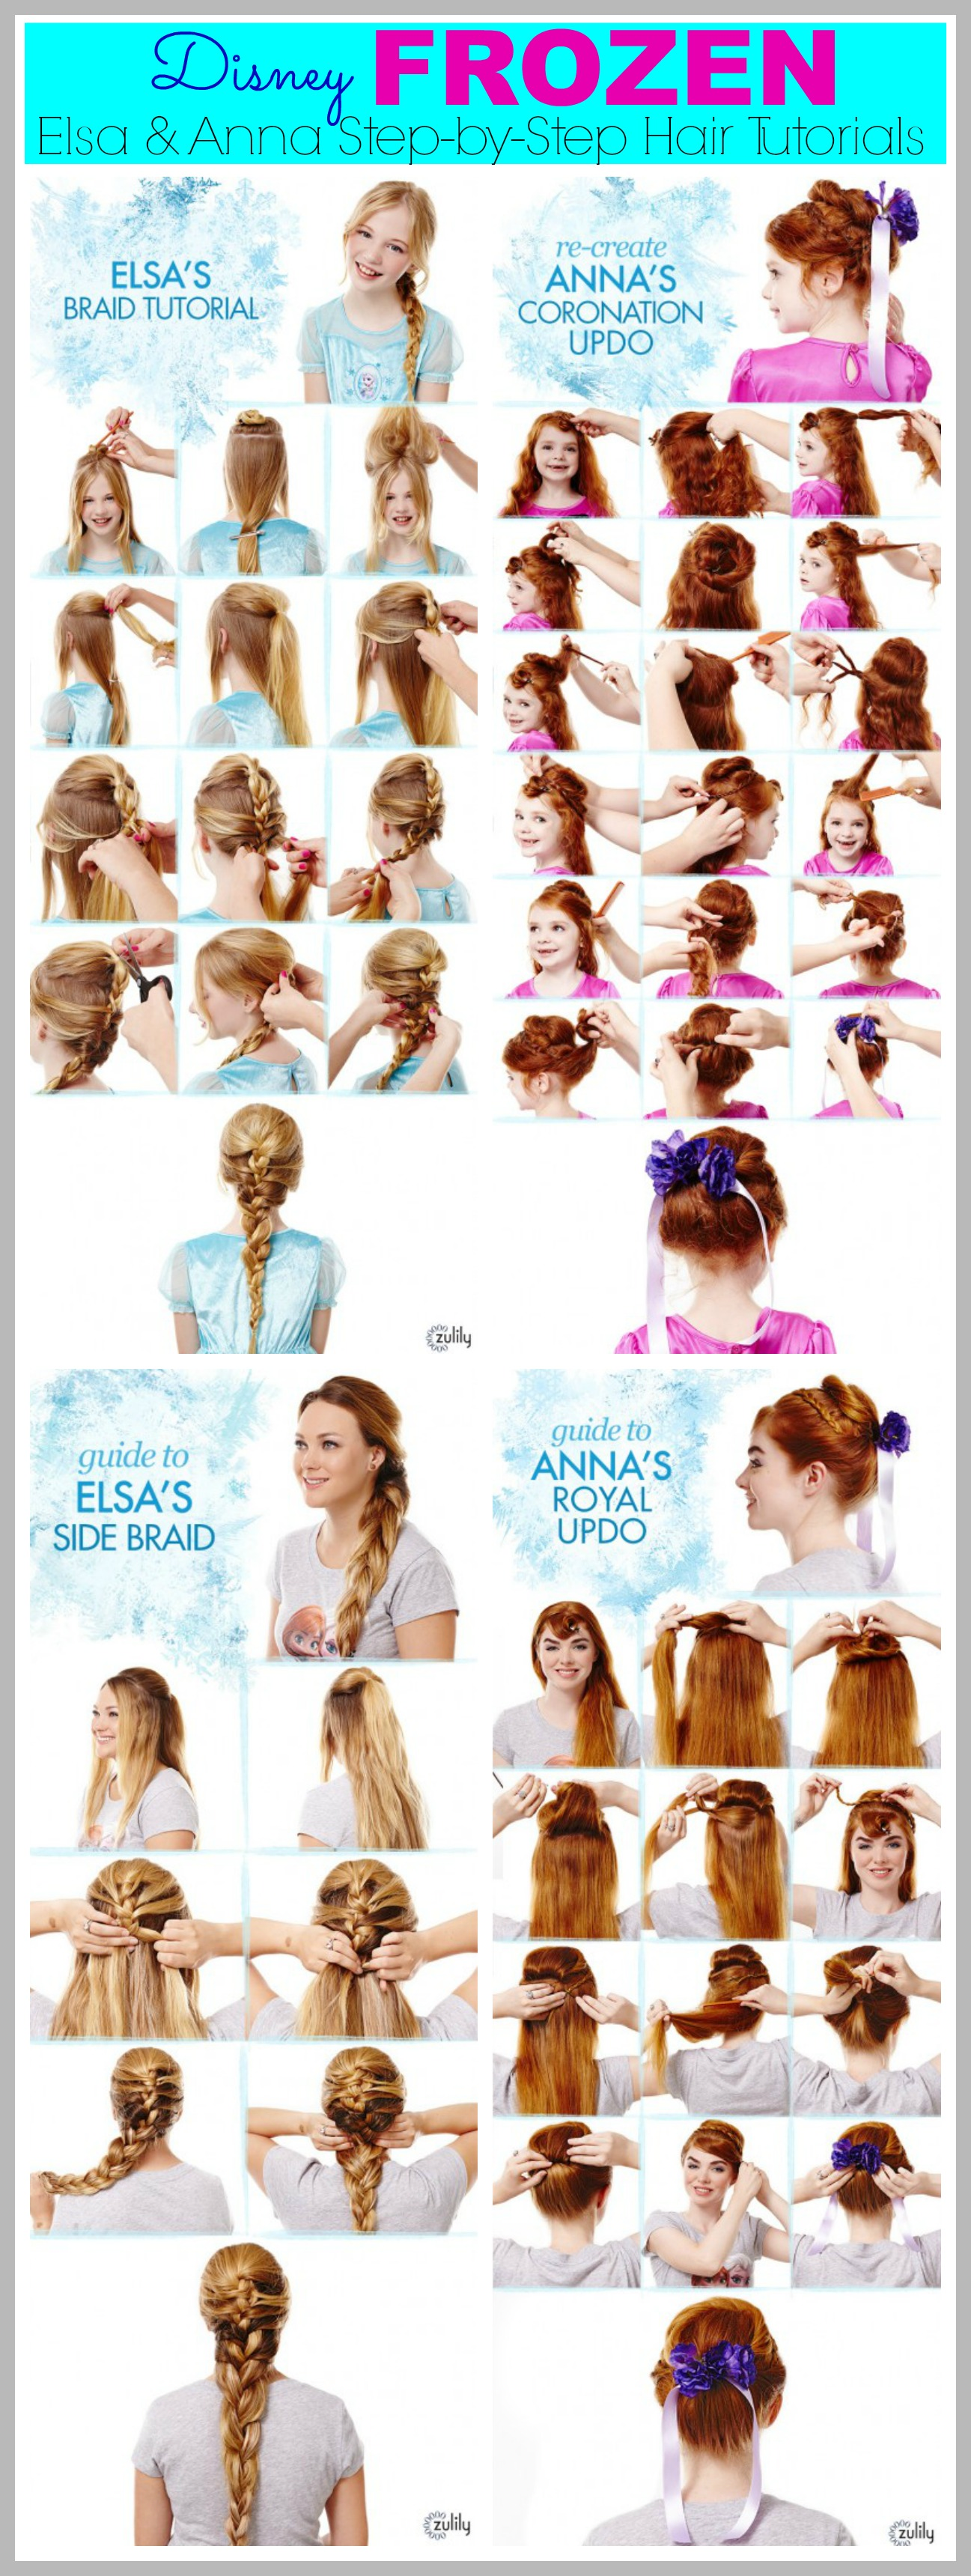 disney-frozen-hair-tutorial-Collage